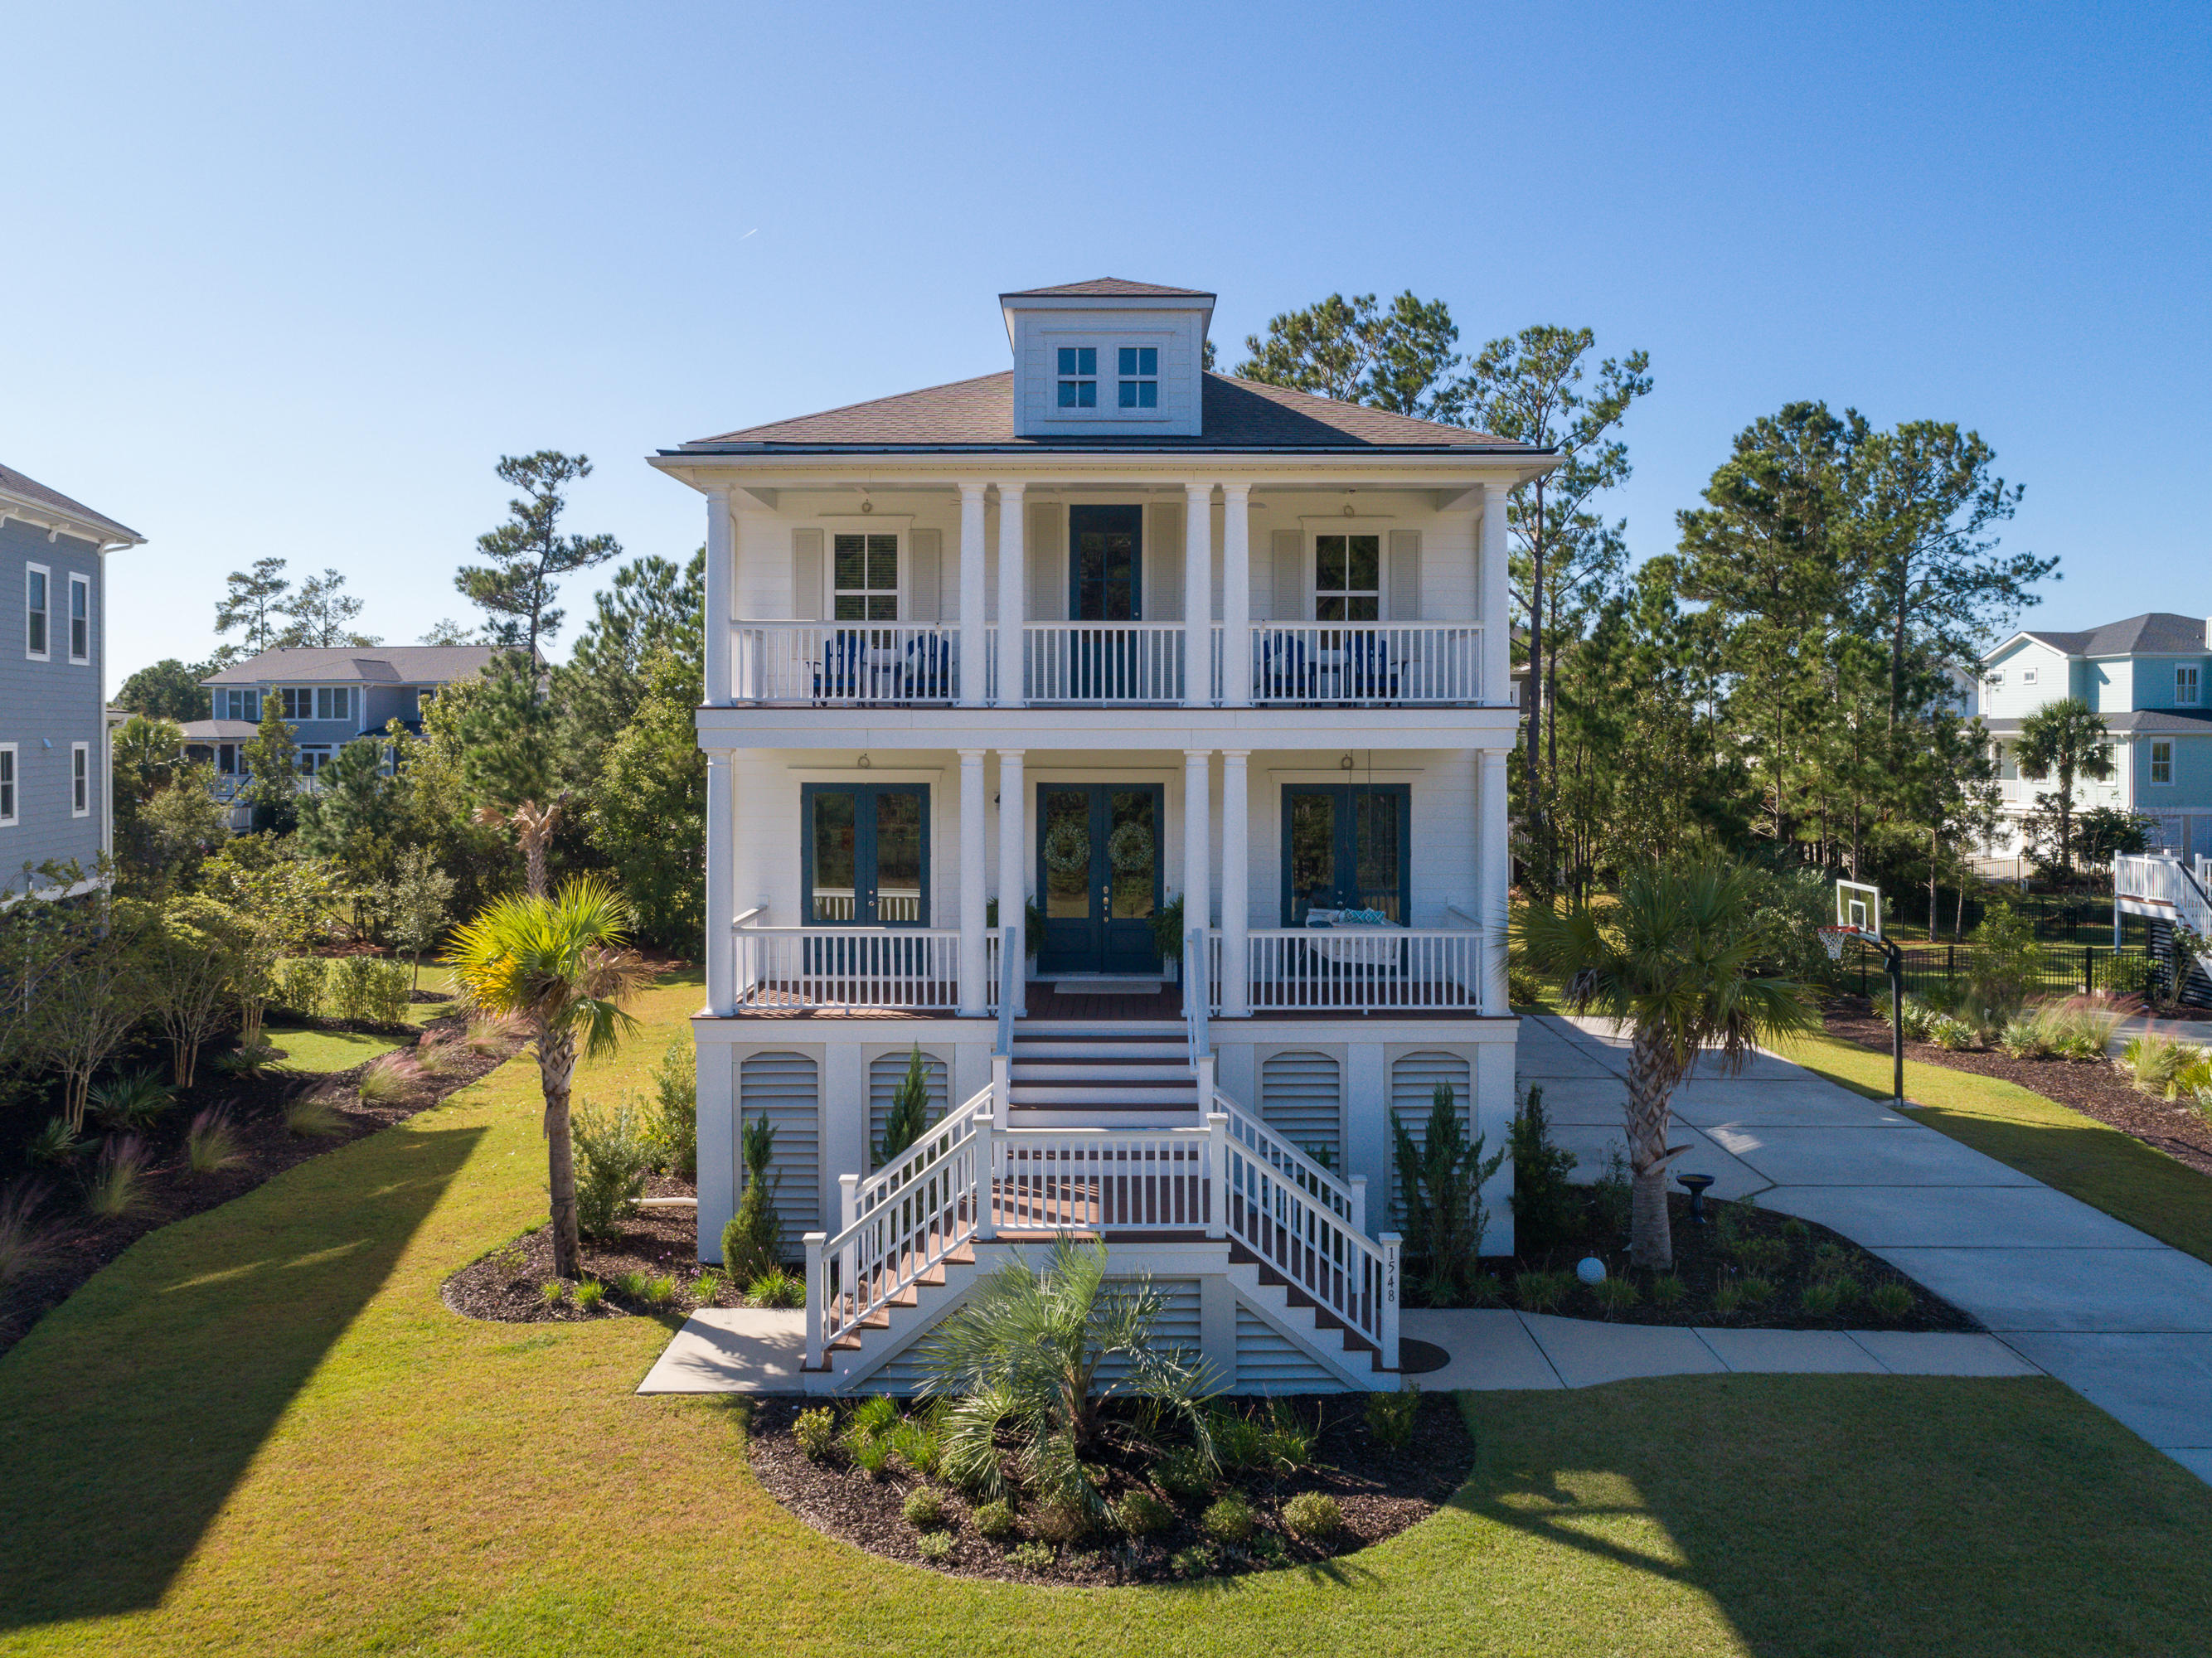 Rivertowne Country Club Homes For Sale - 1548 Rivertowne Country Club, Mount Pleasant, SC - 22